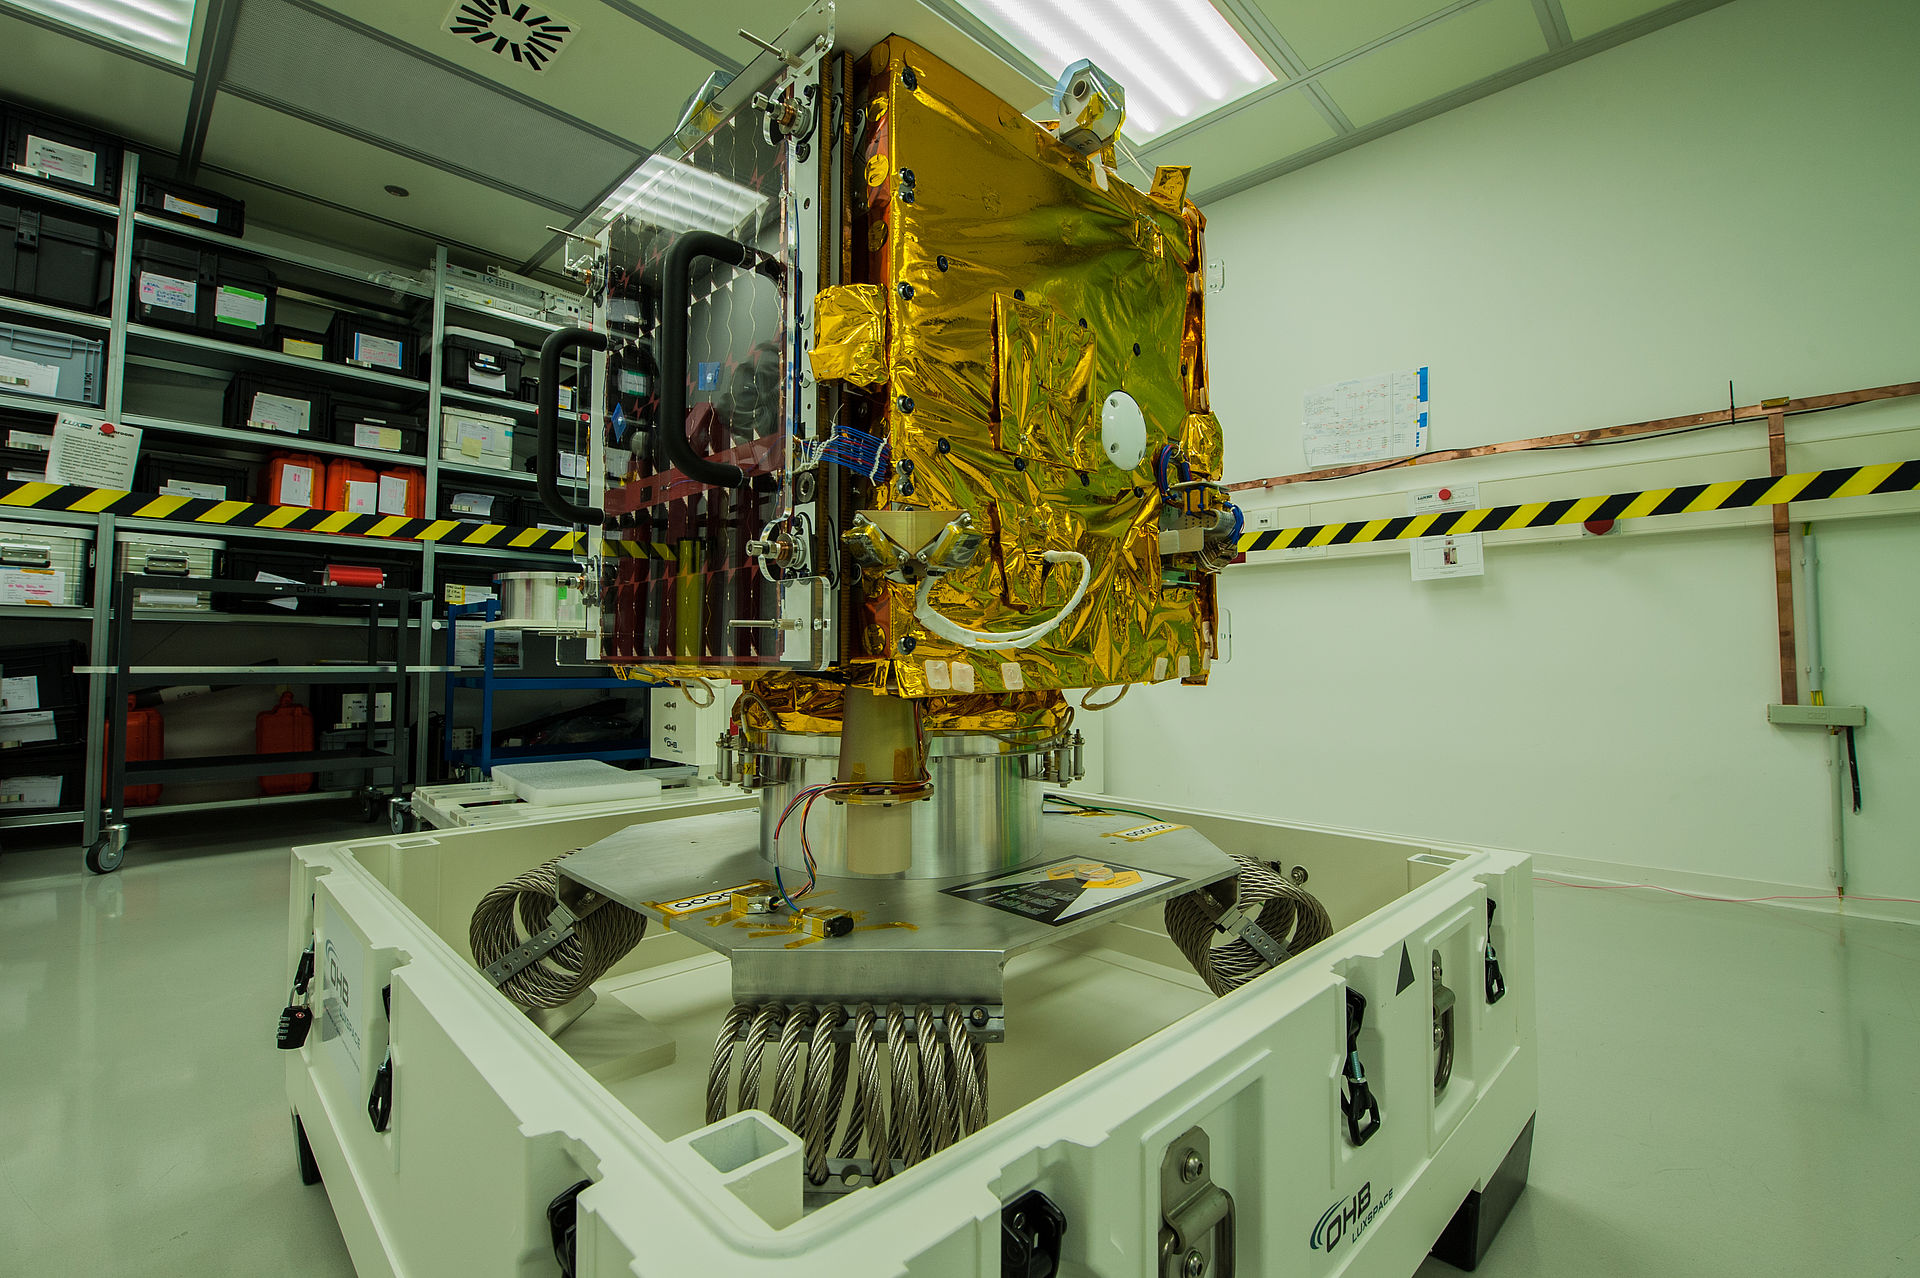 Small but powerful: Microsatellite ESAIL gets ready for launch